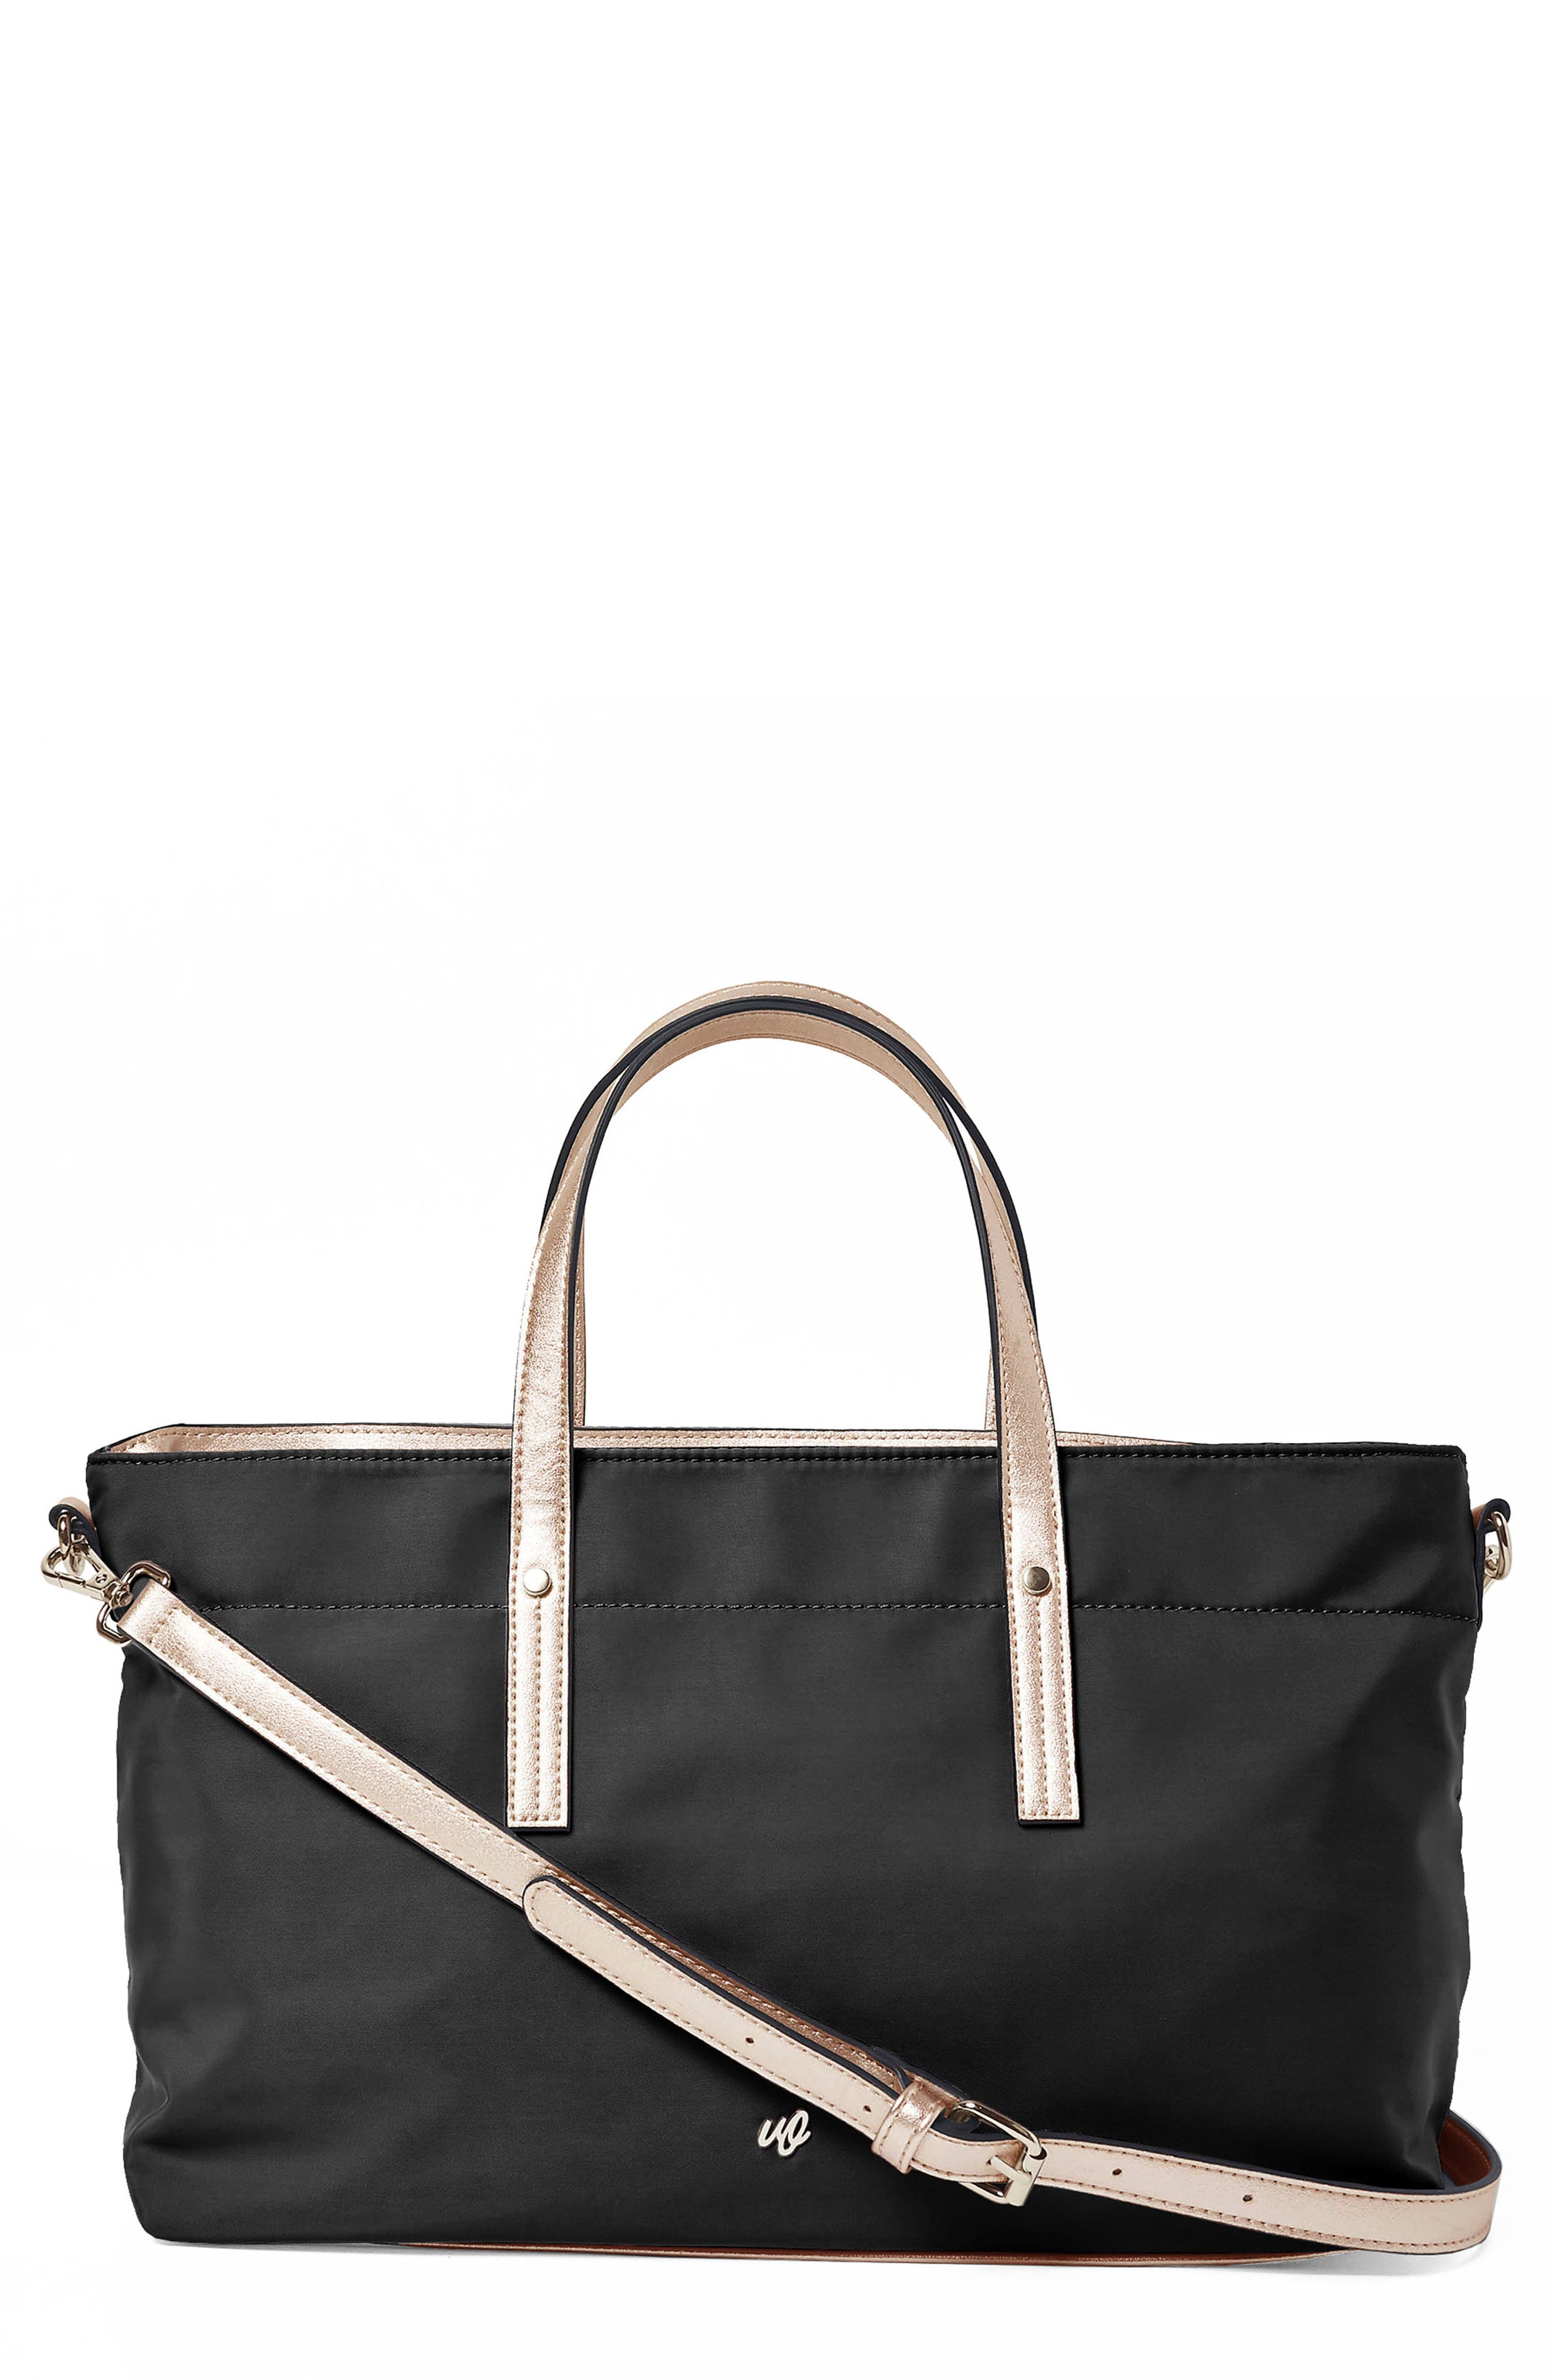 SUPERSTAR NYLON TOTE - BLACK